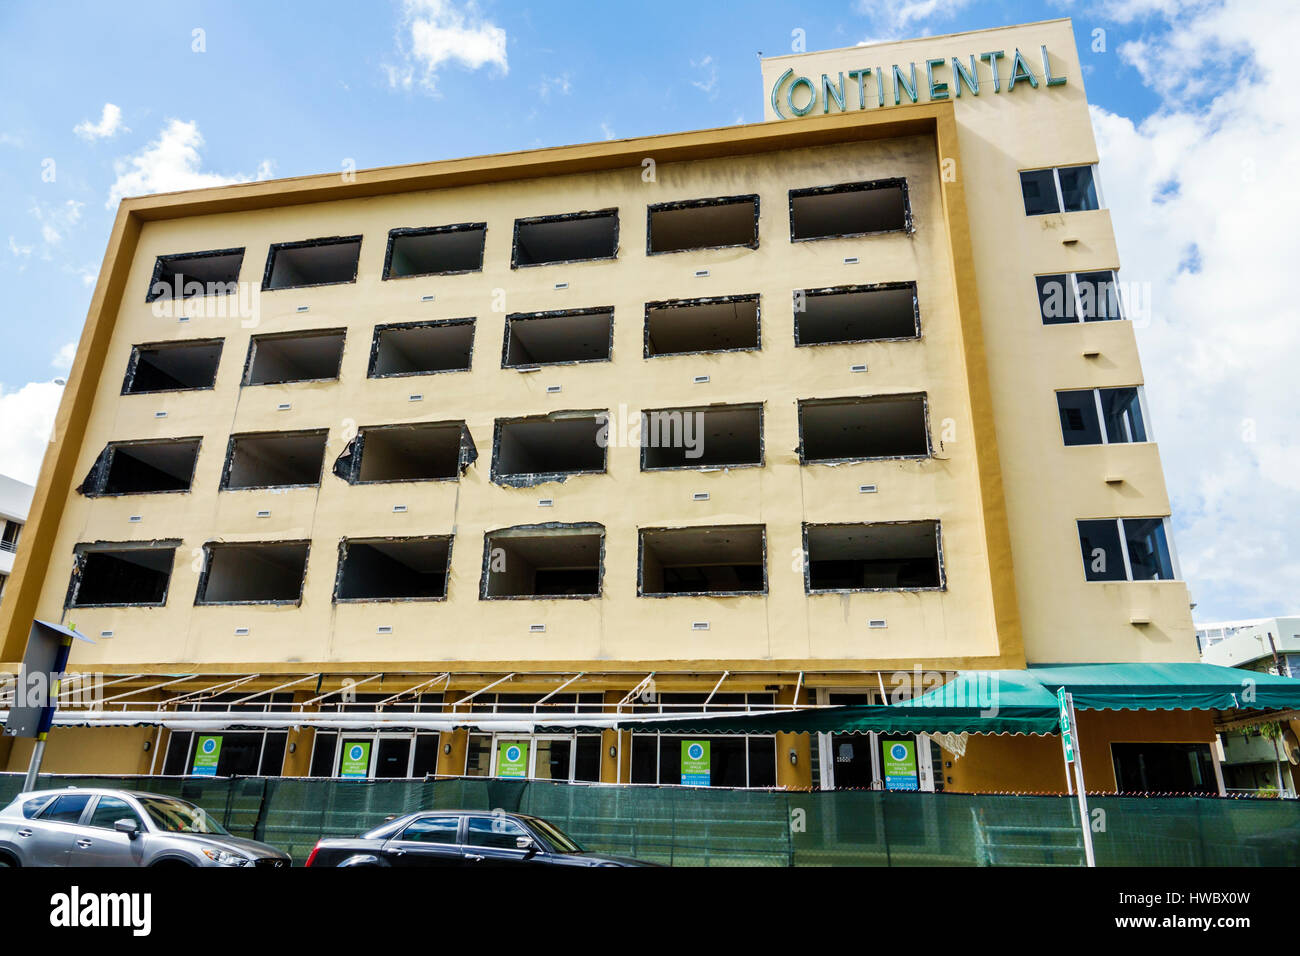 Miami Beach Florida Collins Avenue Continental Hotel gutted building under renovation construction site - Stock Image